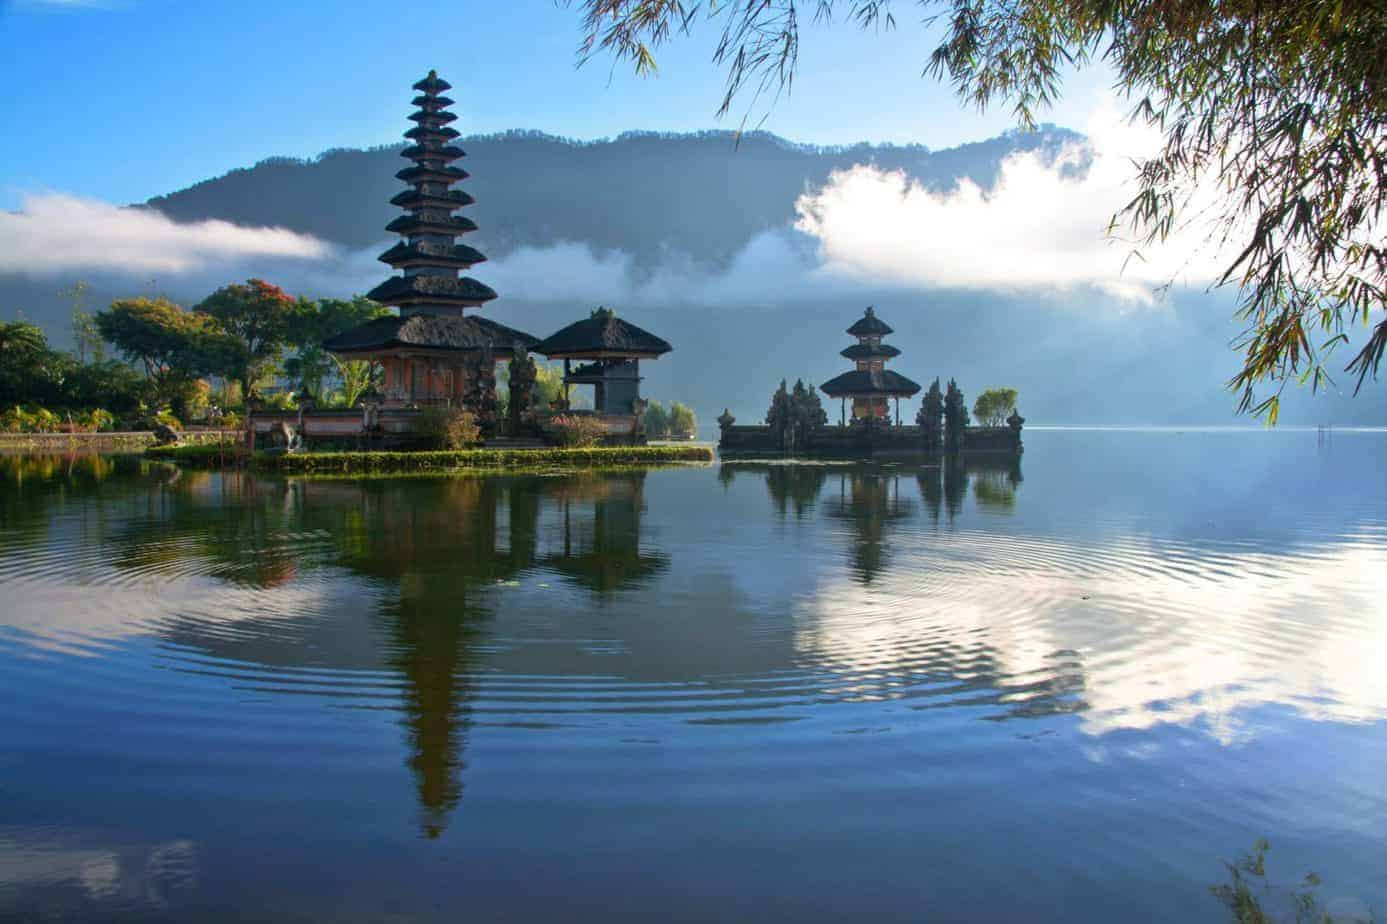 A temple by a lake in Bali, Indonesia.